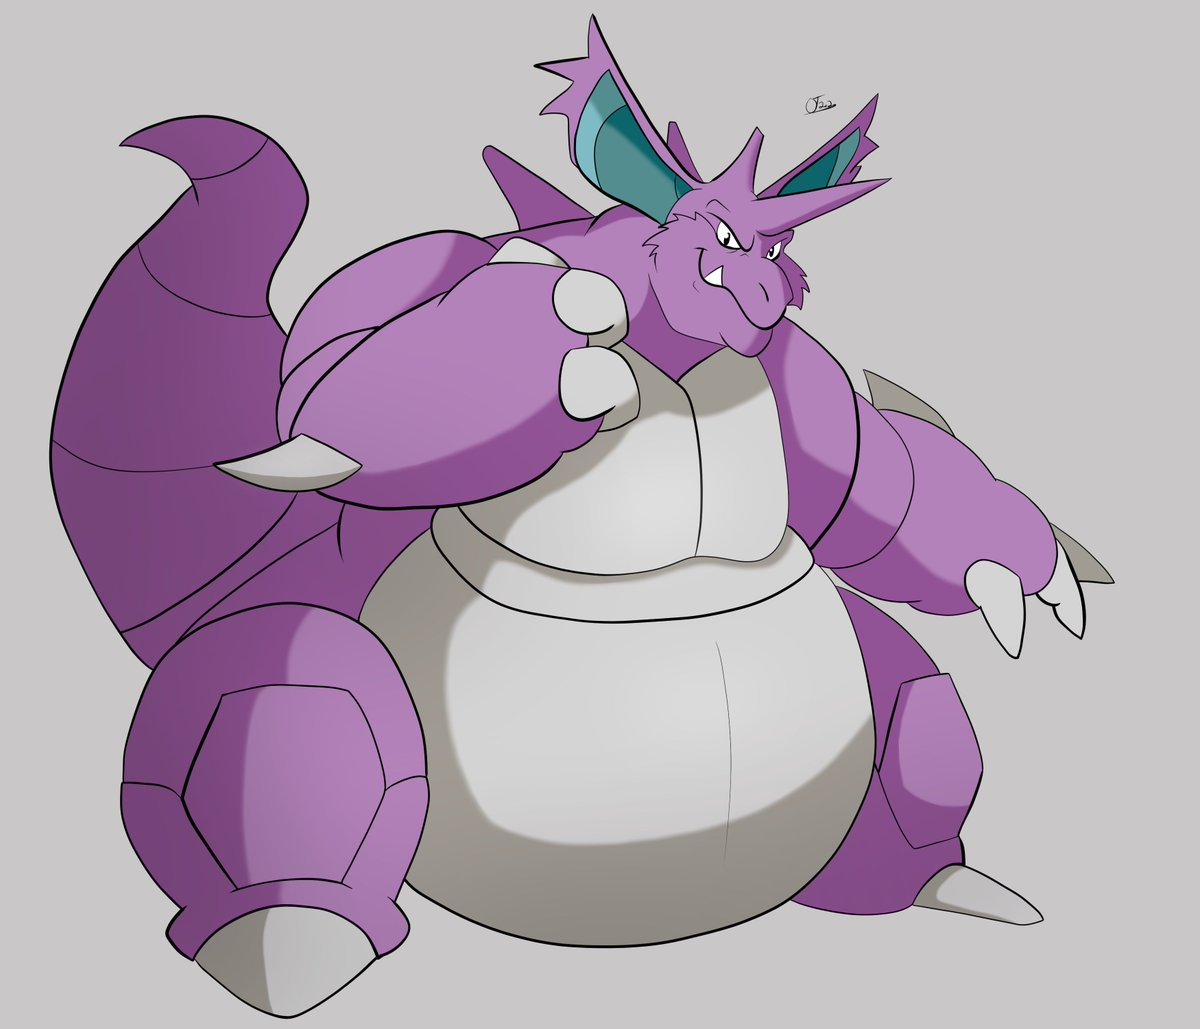 Still have that pokemon itch, so heres some more nidoking.